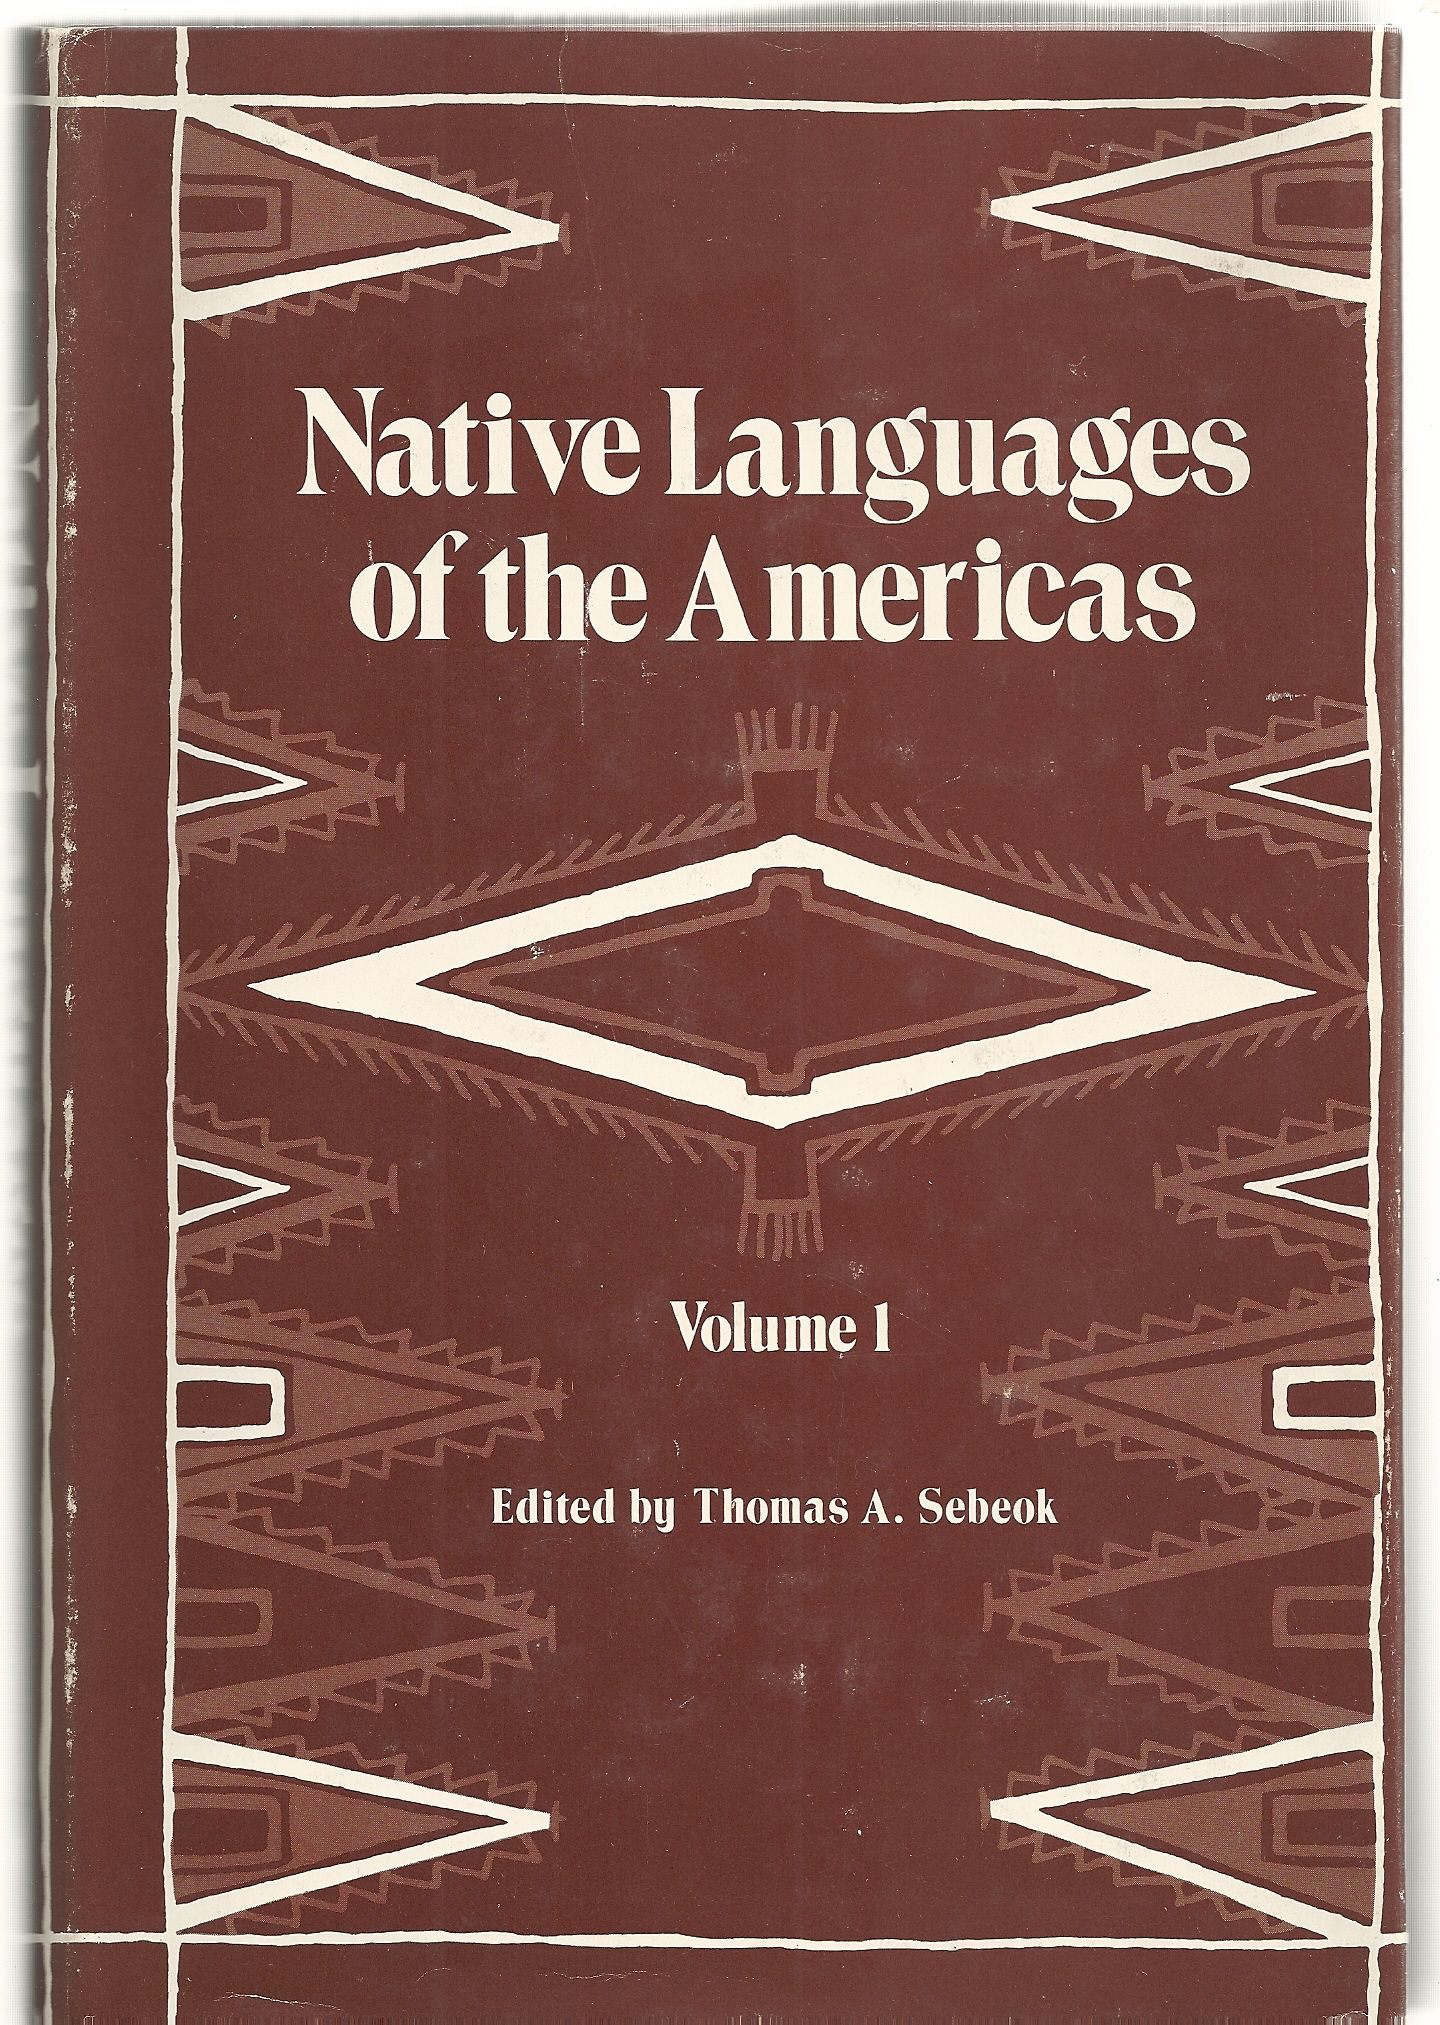 001: Native Languages of the Americas: Volume 1